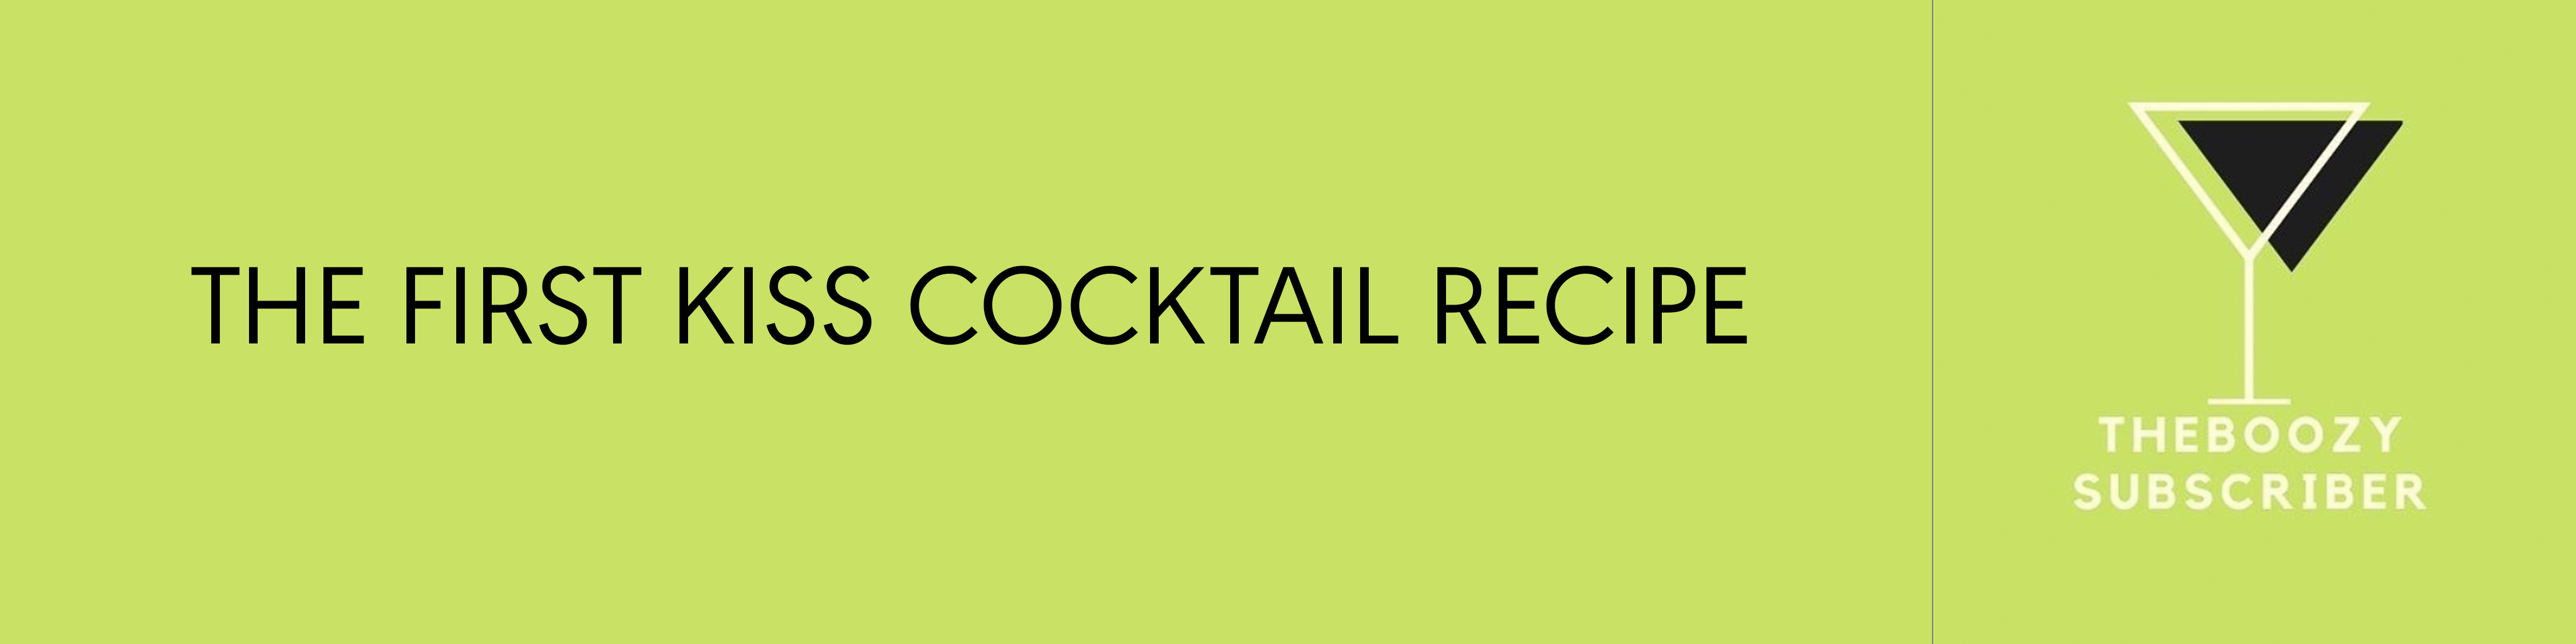 The First Kiss Cocktail Recipe